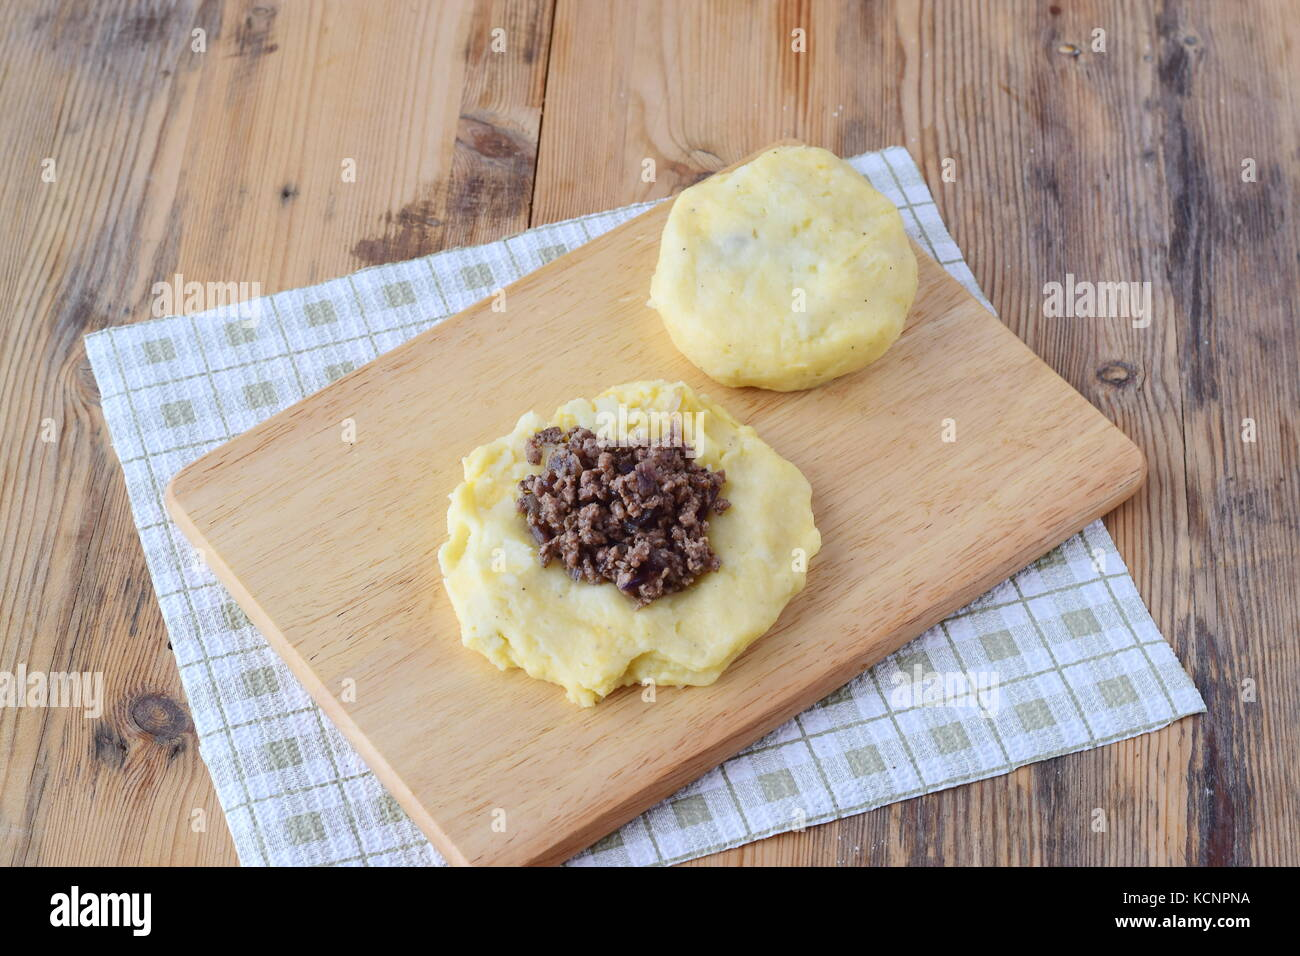 Potato dumplings stuffed with minced meat on a wooden cutting board. Step by step cooking. Healthy eating concept - Stock Image